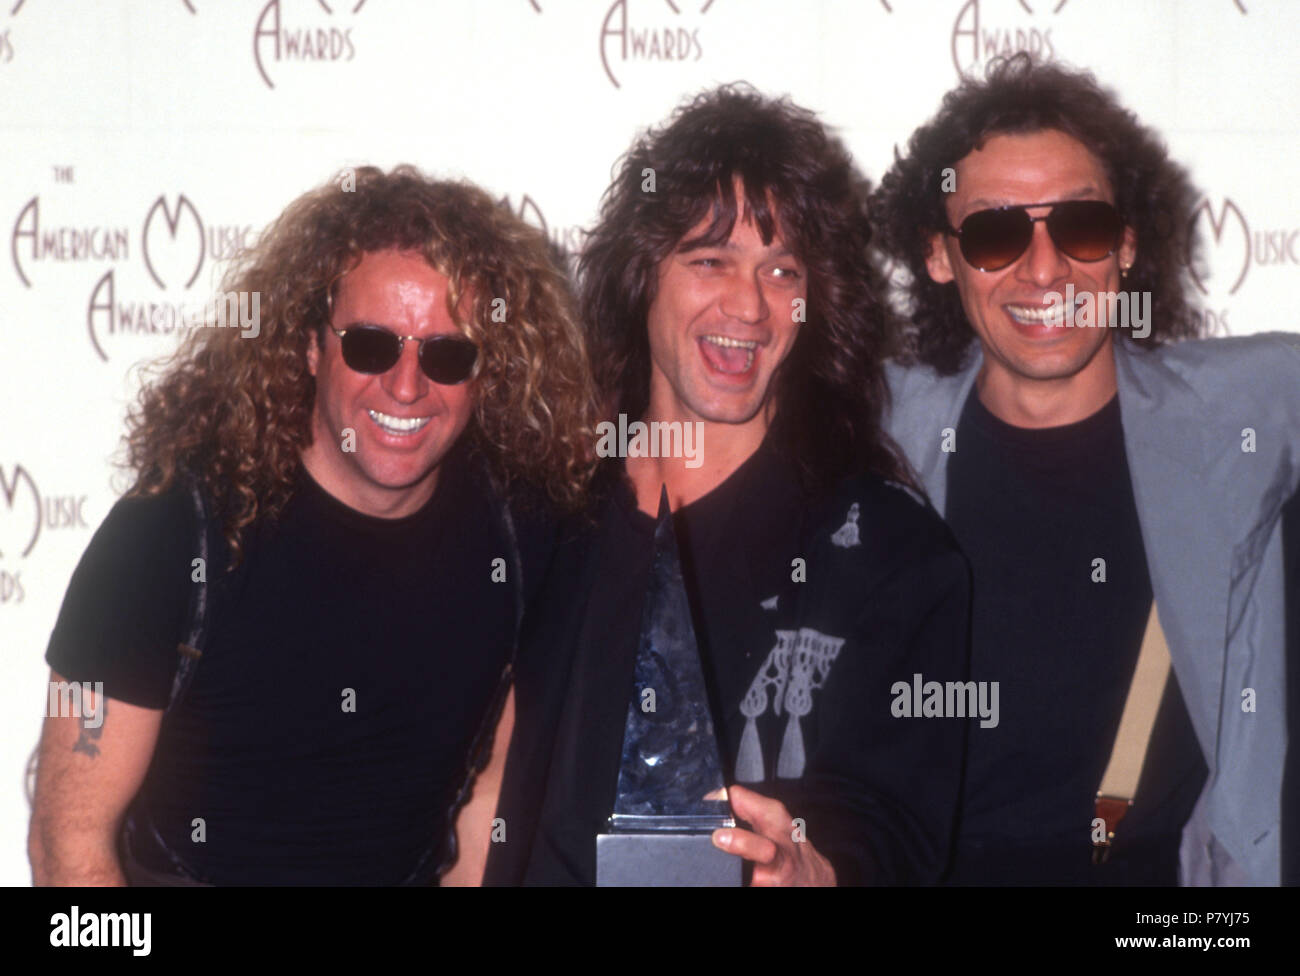 Los Angeles Ca January 27 L R Musicians Sammy Hagar Eddie Van Halen And Alex Van Halen Of Van Halen Attend The 19th American Music Awards On January 27 1992 At The